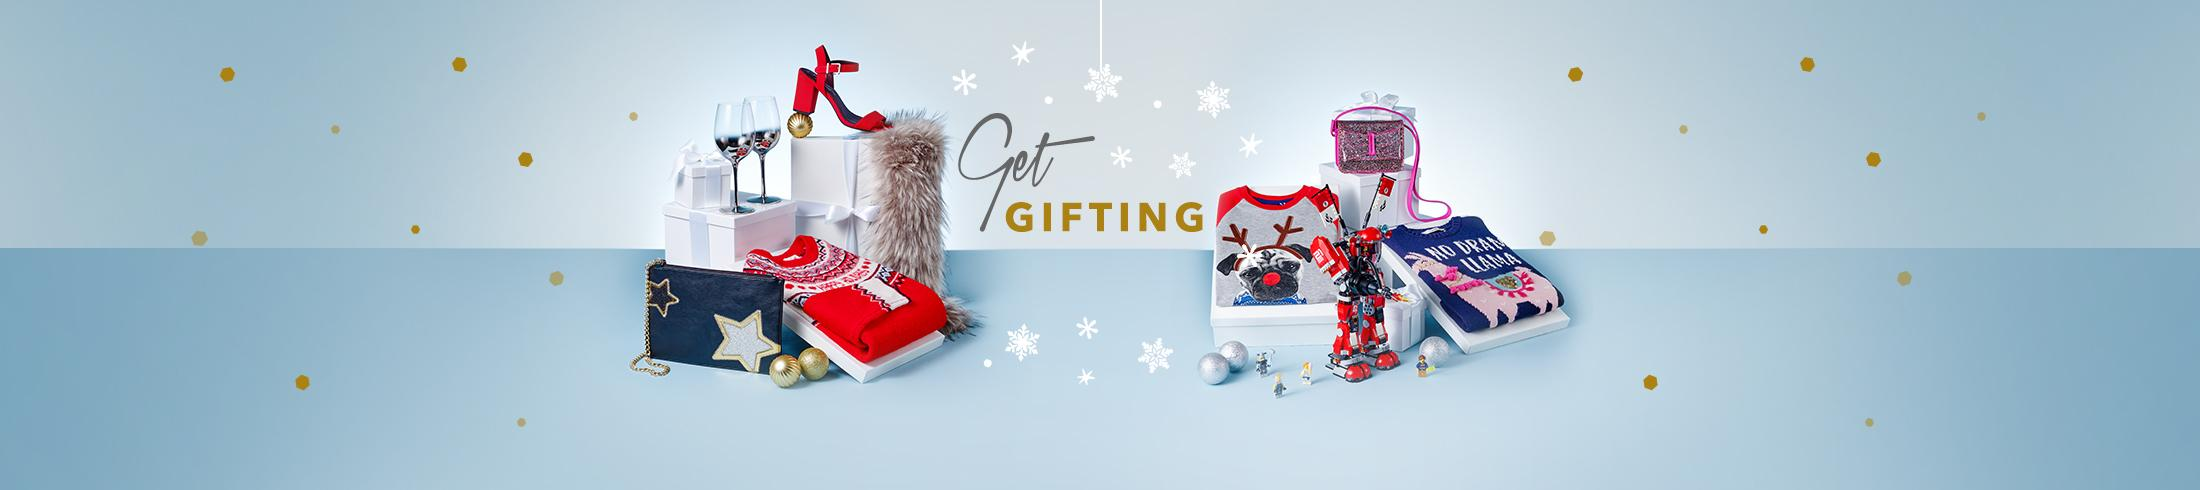 Shop gifts for the family this Christmas at George.com